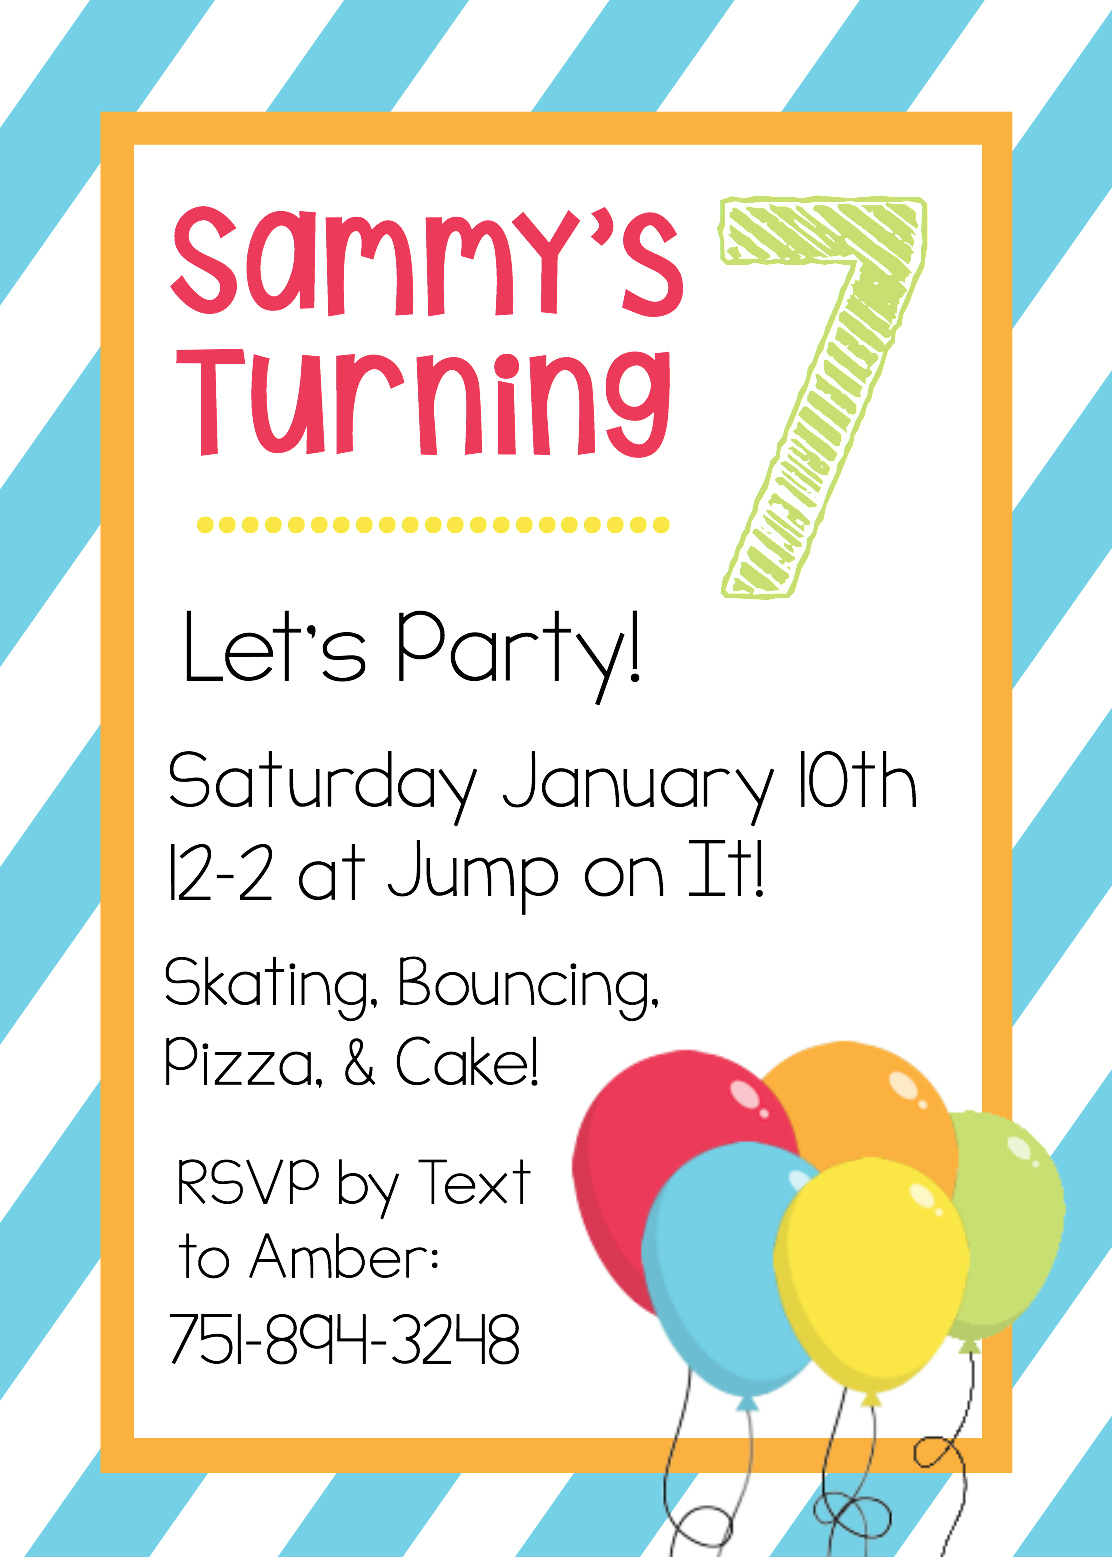 Printable Birthday Invitation Templates - Birthday invite free template